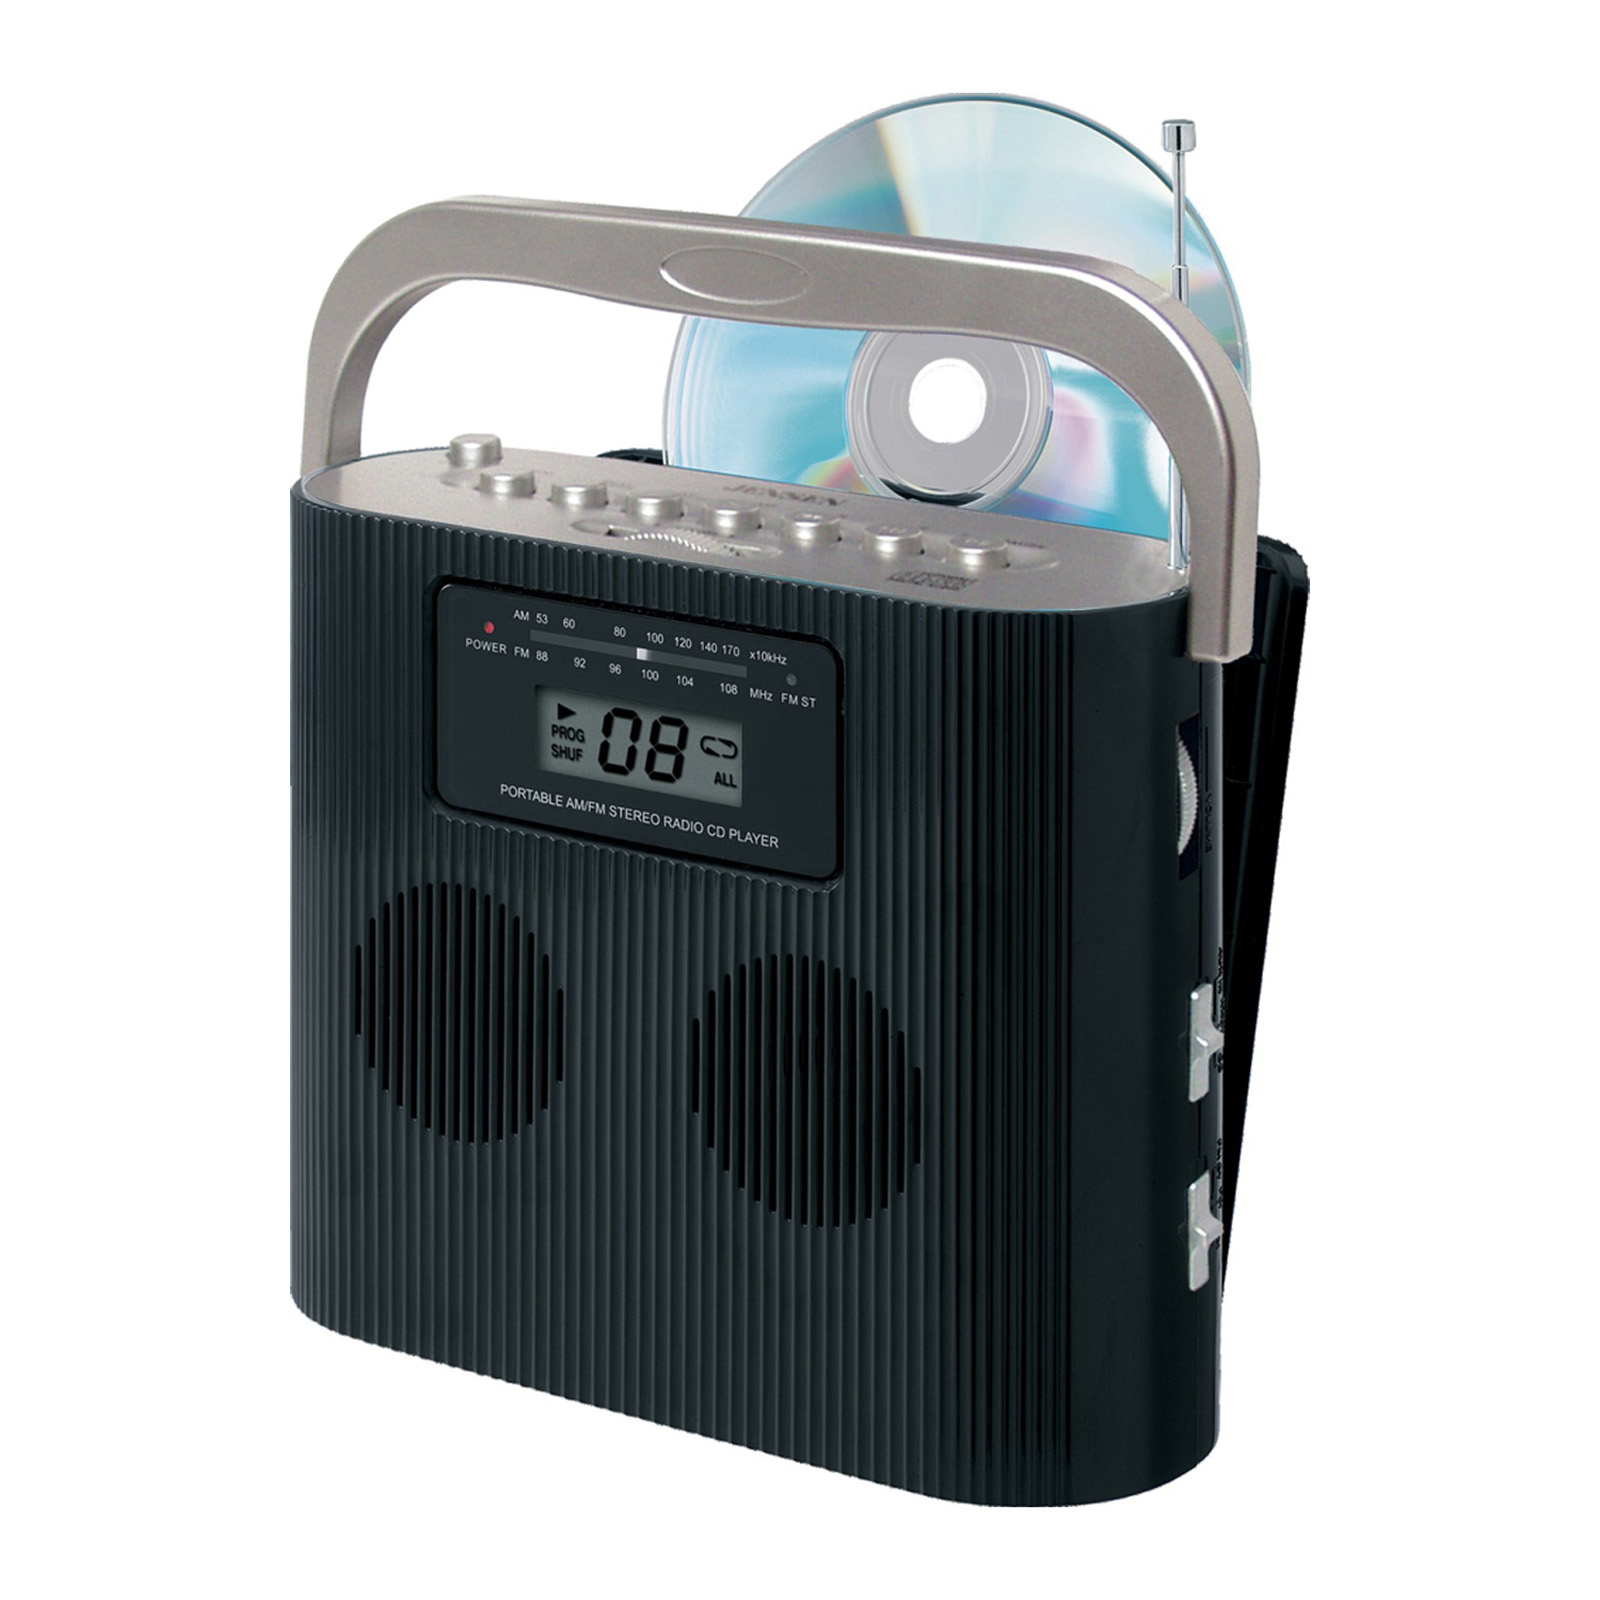 High Quality Jensen SMPS 550 Portable Stereo Speaker For IPad/iPad 2   Walmart.com